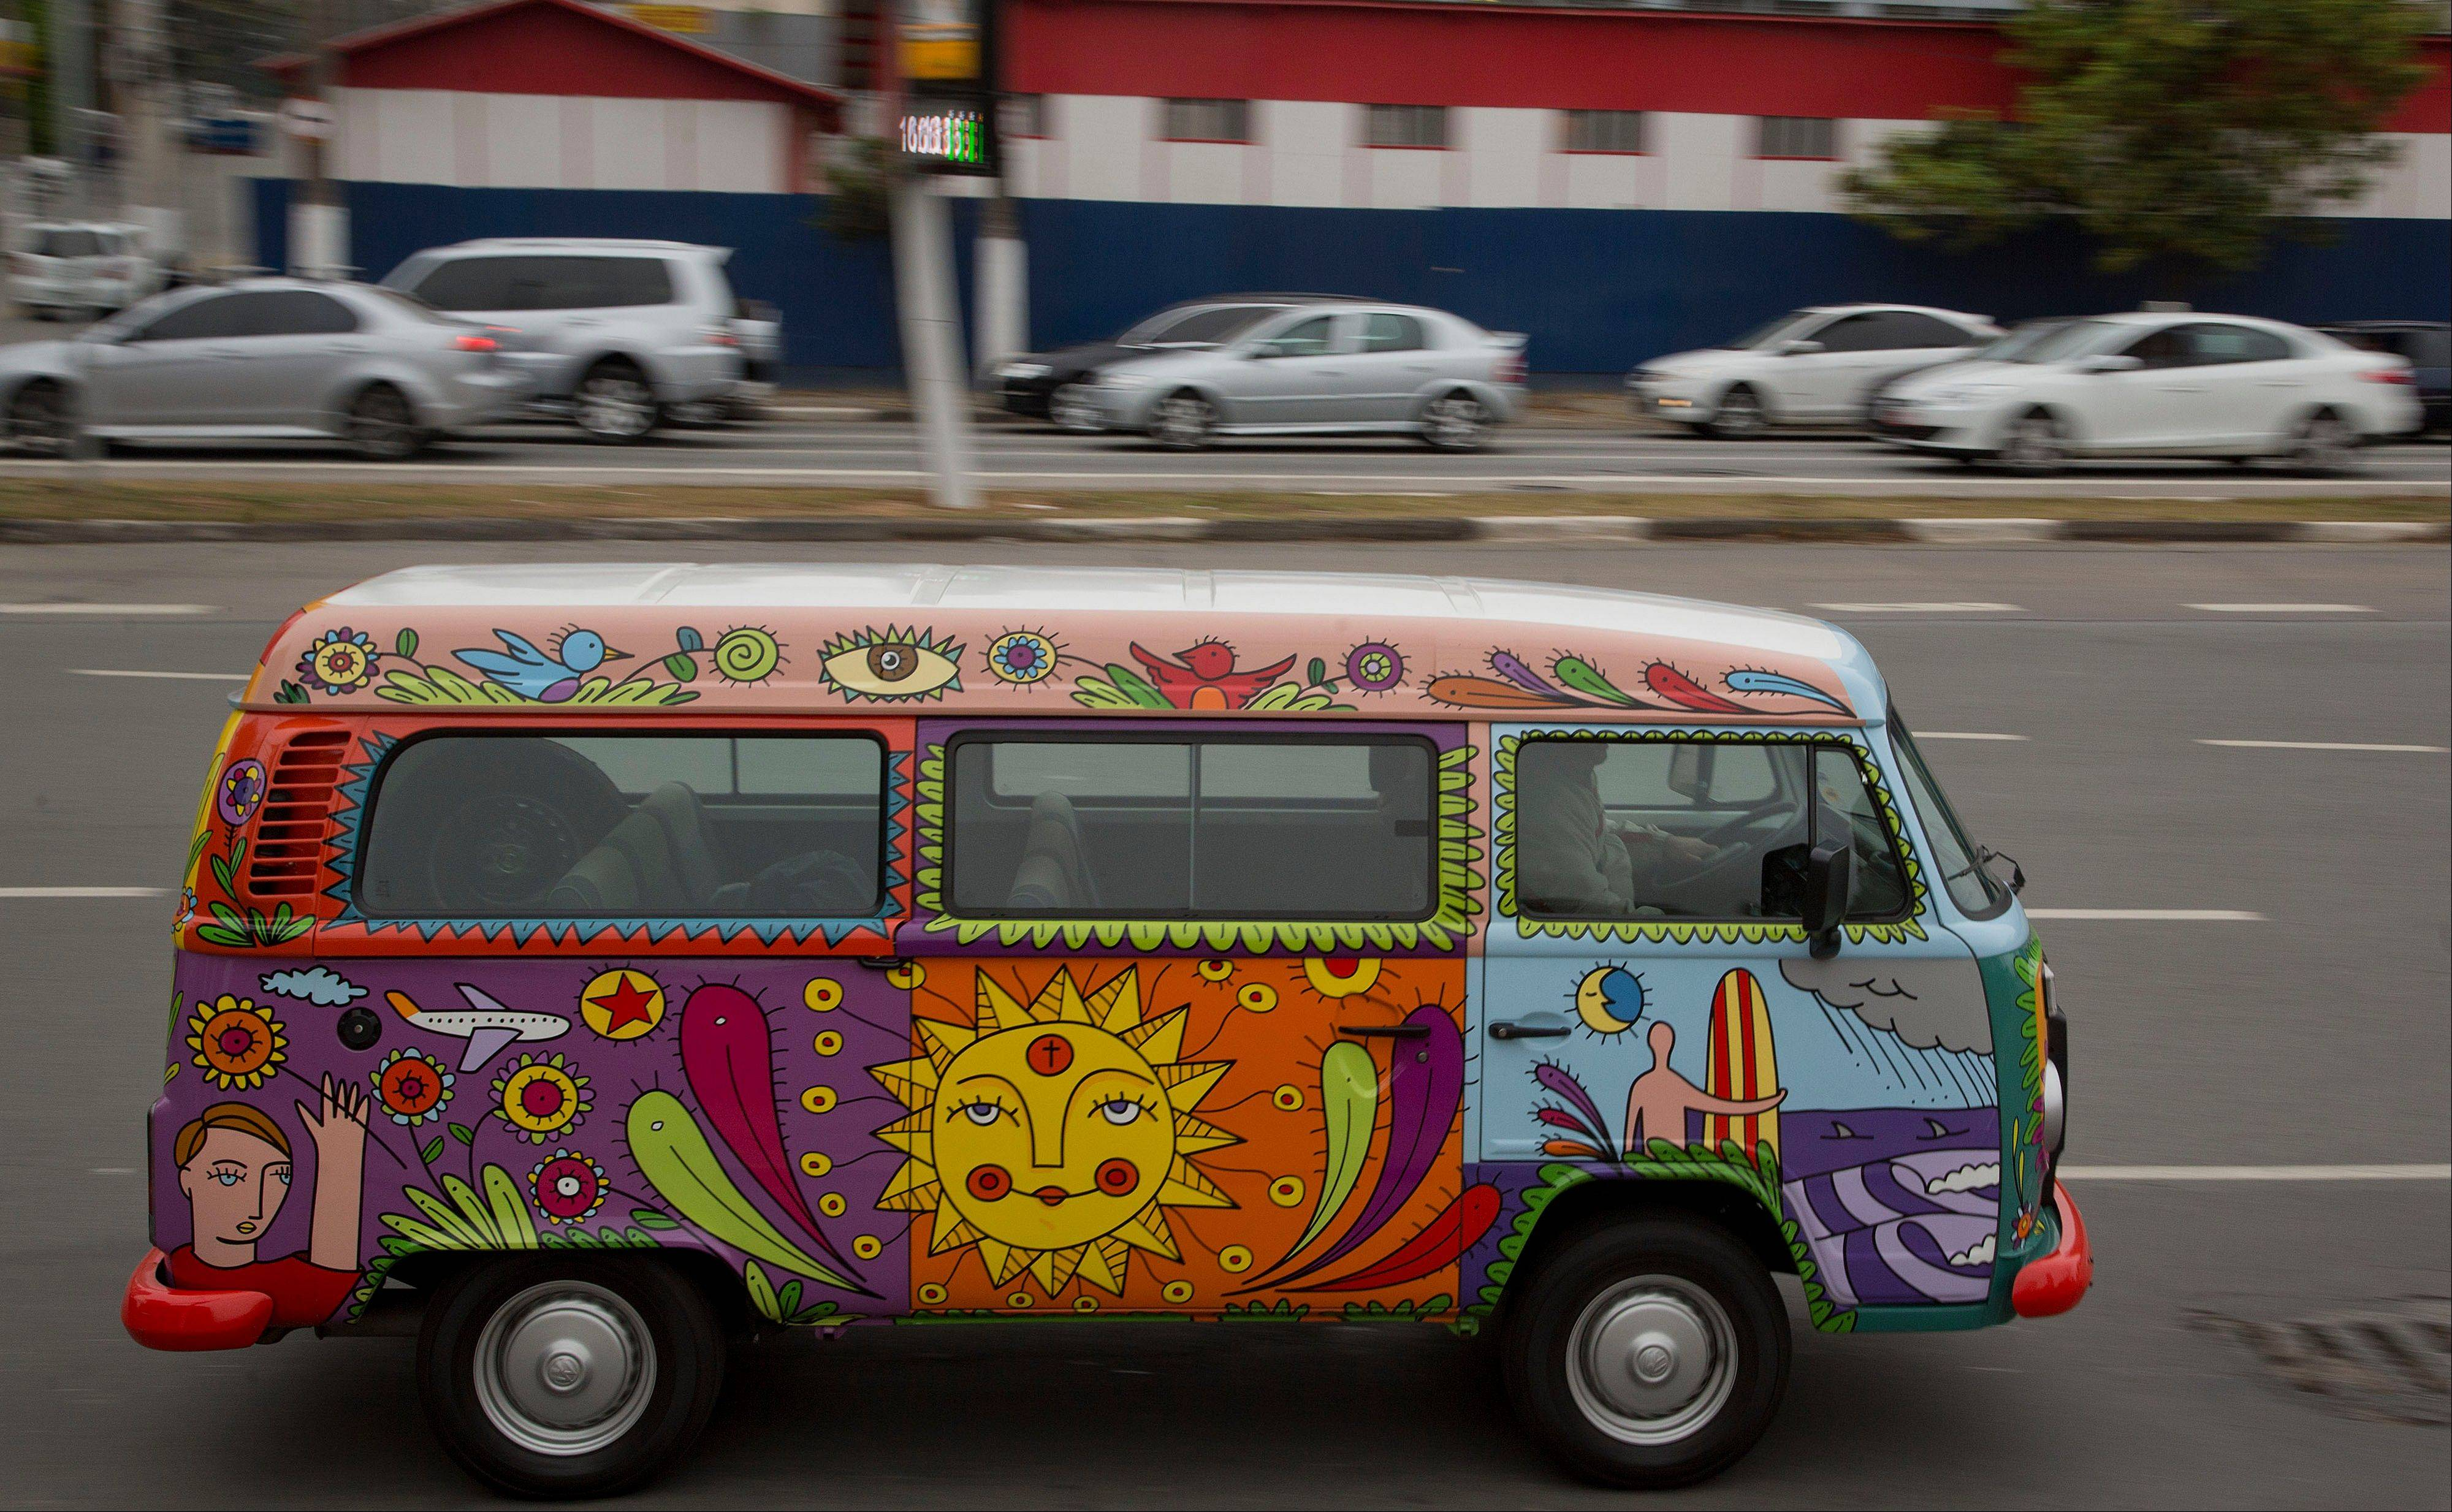 "Advertising executive Marcelo Serpa drives his Volkswagen van, or Kombi, emblazoned with a ""rolling mural,"" that he painted, through the streets of Sao Paulo, Brazil. Serpa's 2007 VW van version is meant to have a 1960s American hippie feel. He painted it in bright green, yellow, blue and red colors with cartoonlike drawings of his wife, daughters, and himself, surfboard in hand. Serpa said the bus evokes ""a spirit of playfulness and happiness,"" causing people to pause and smile when he drives it down Sao Paulo's chaotic streets."